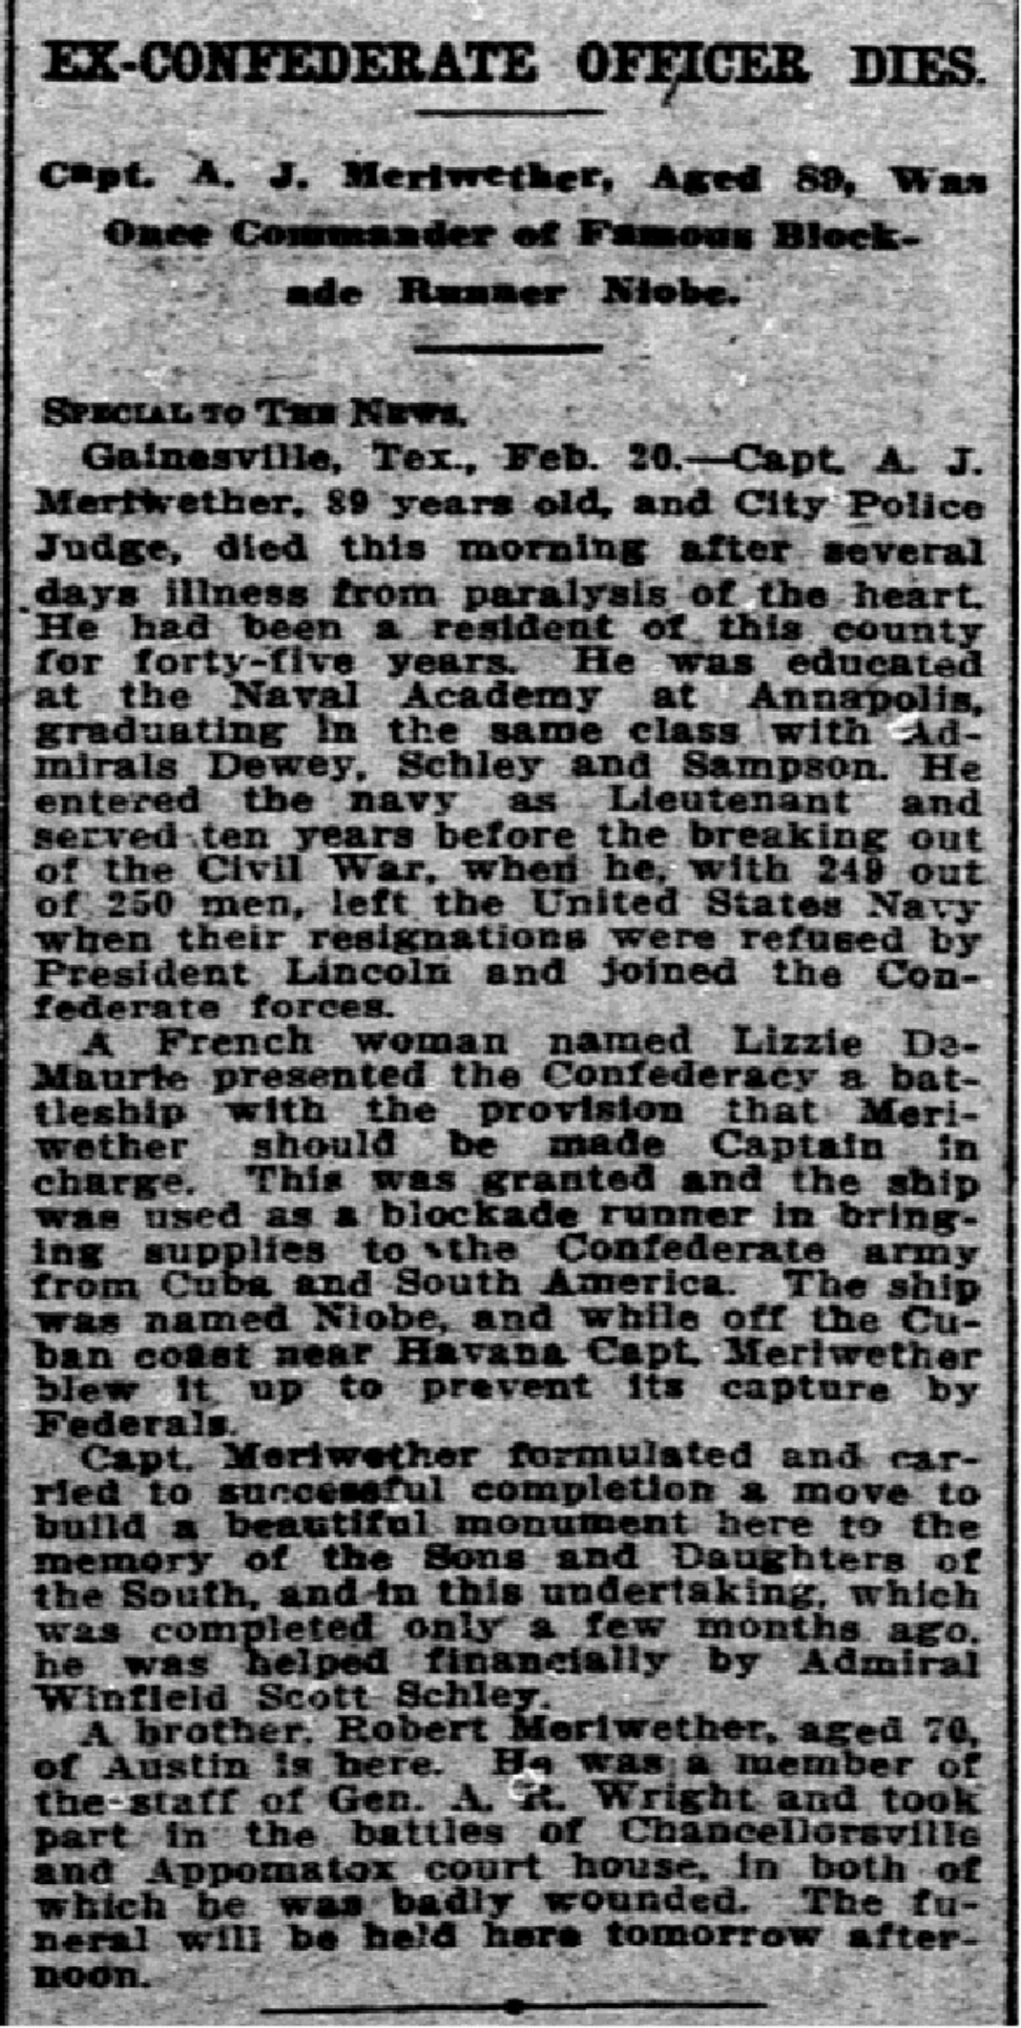 PDF: 'Ex-Confederate officer dies' published Feb. 21, 1912